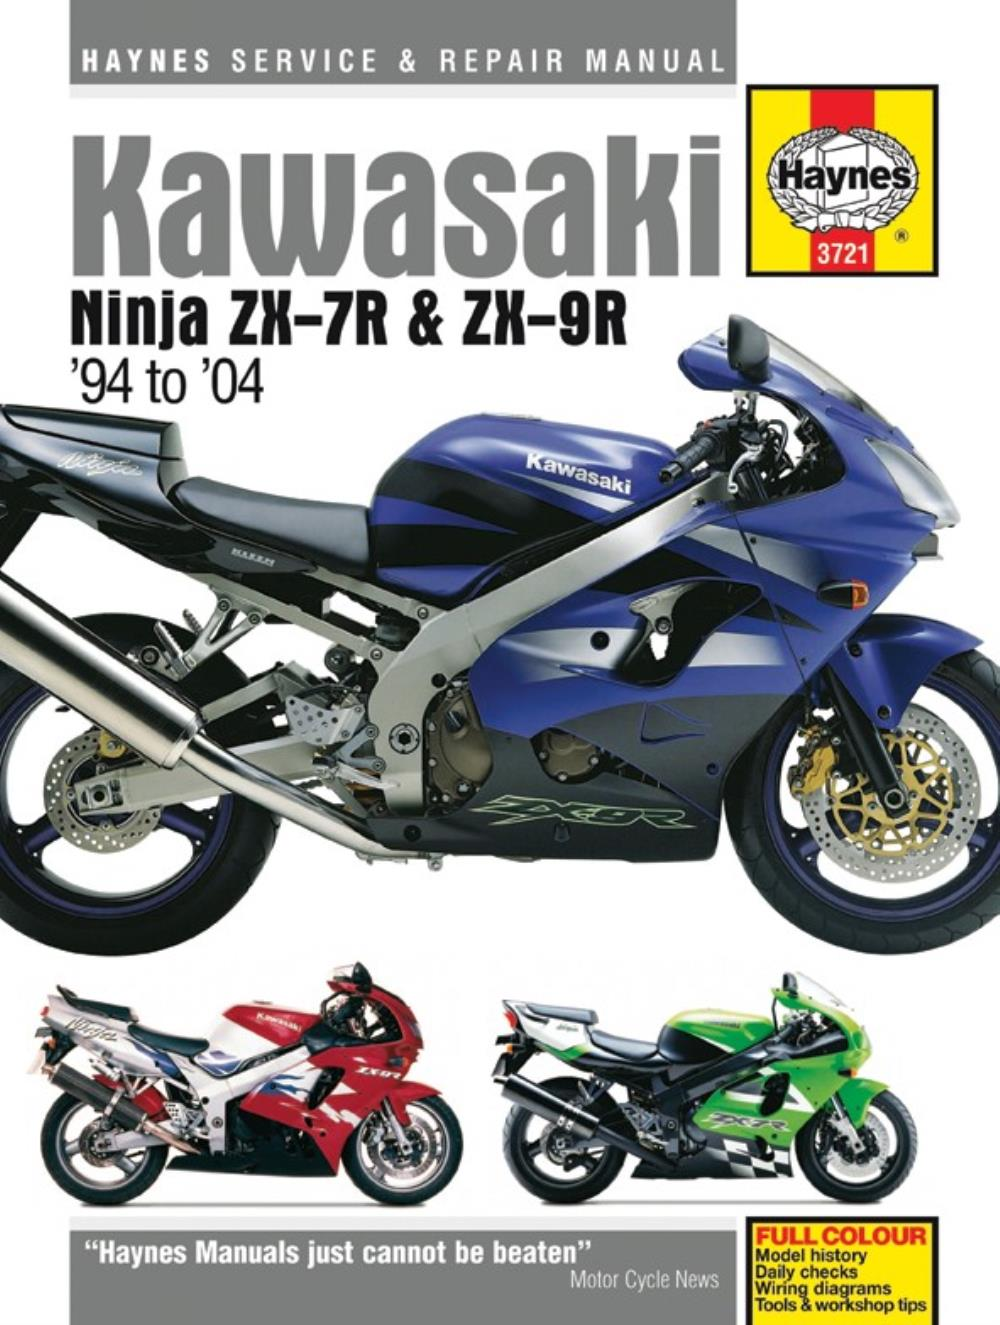 2000 Zx6r J1 Manual Various Owner Guide 03 Kawasaki 636 Wiring Diagram Haynes For Zx 9r Zx900e1 Ebay Rh Co Uk 2001 2003